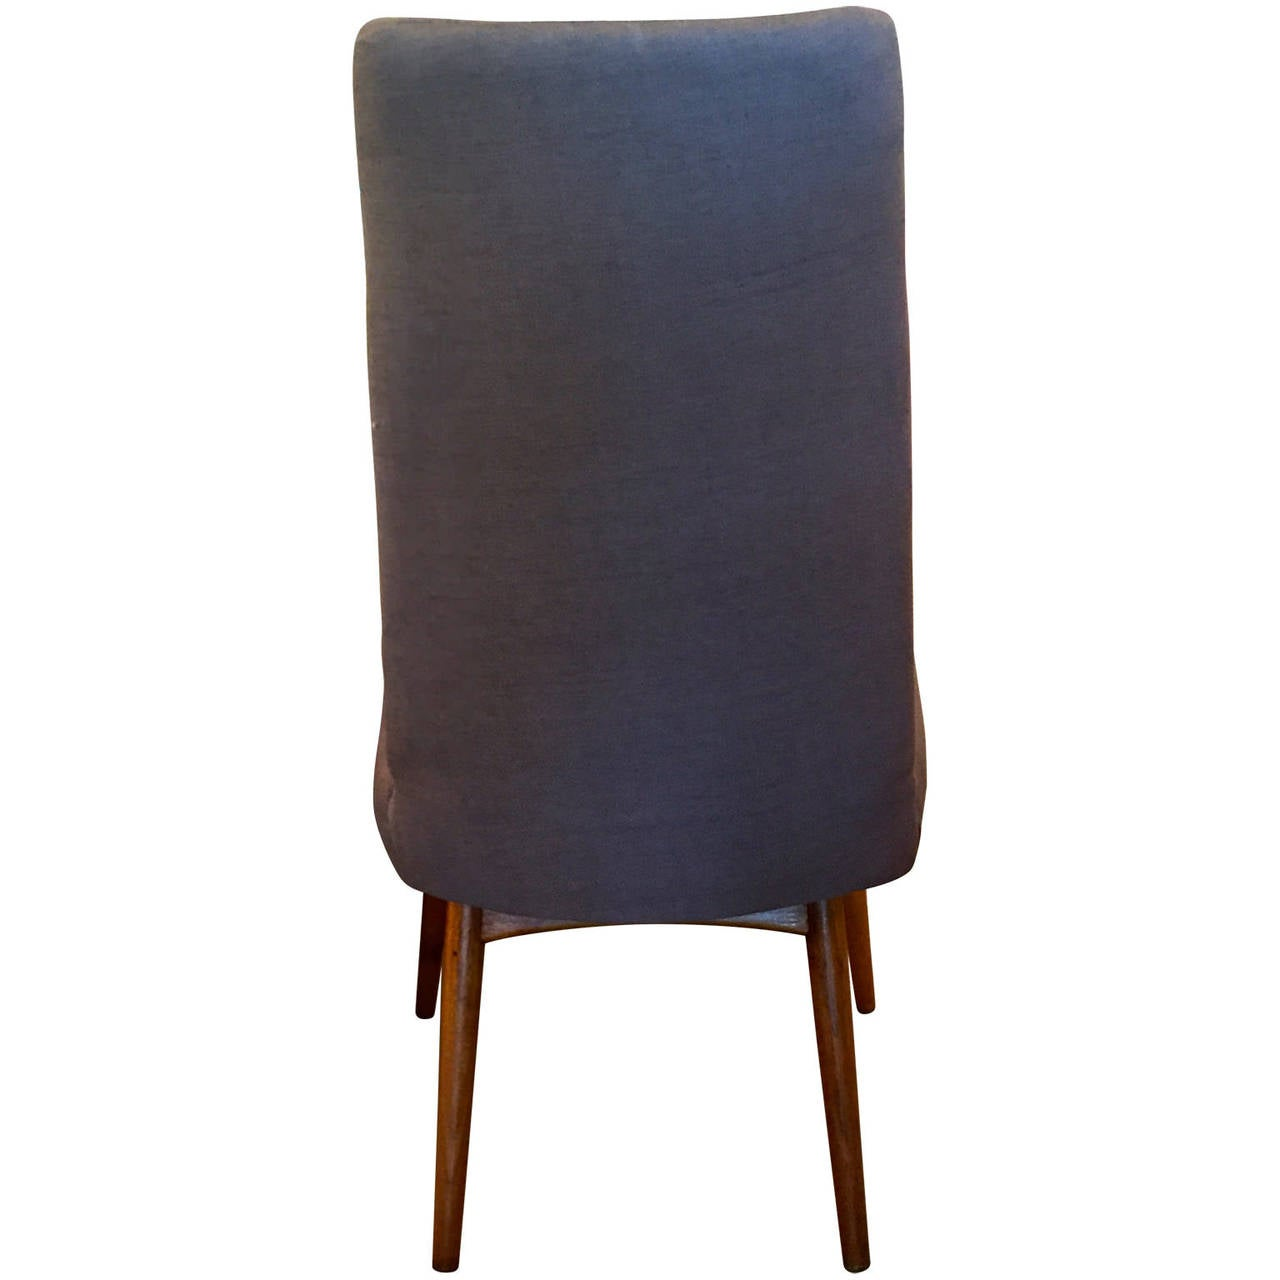 Machine-Made Mid Century Modern Adrian Pearsall S/6 Rosewood & Linen Dining Chairs For Sale